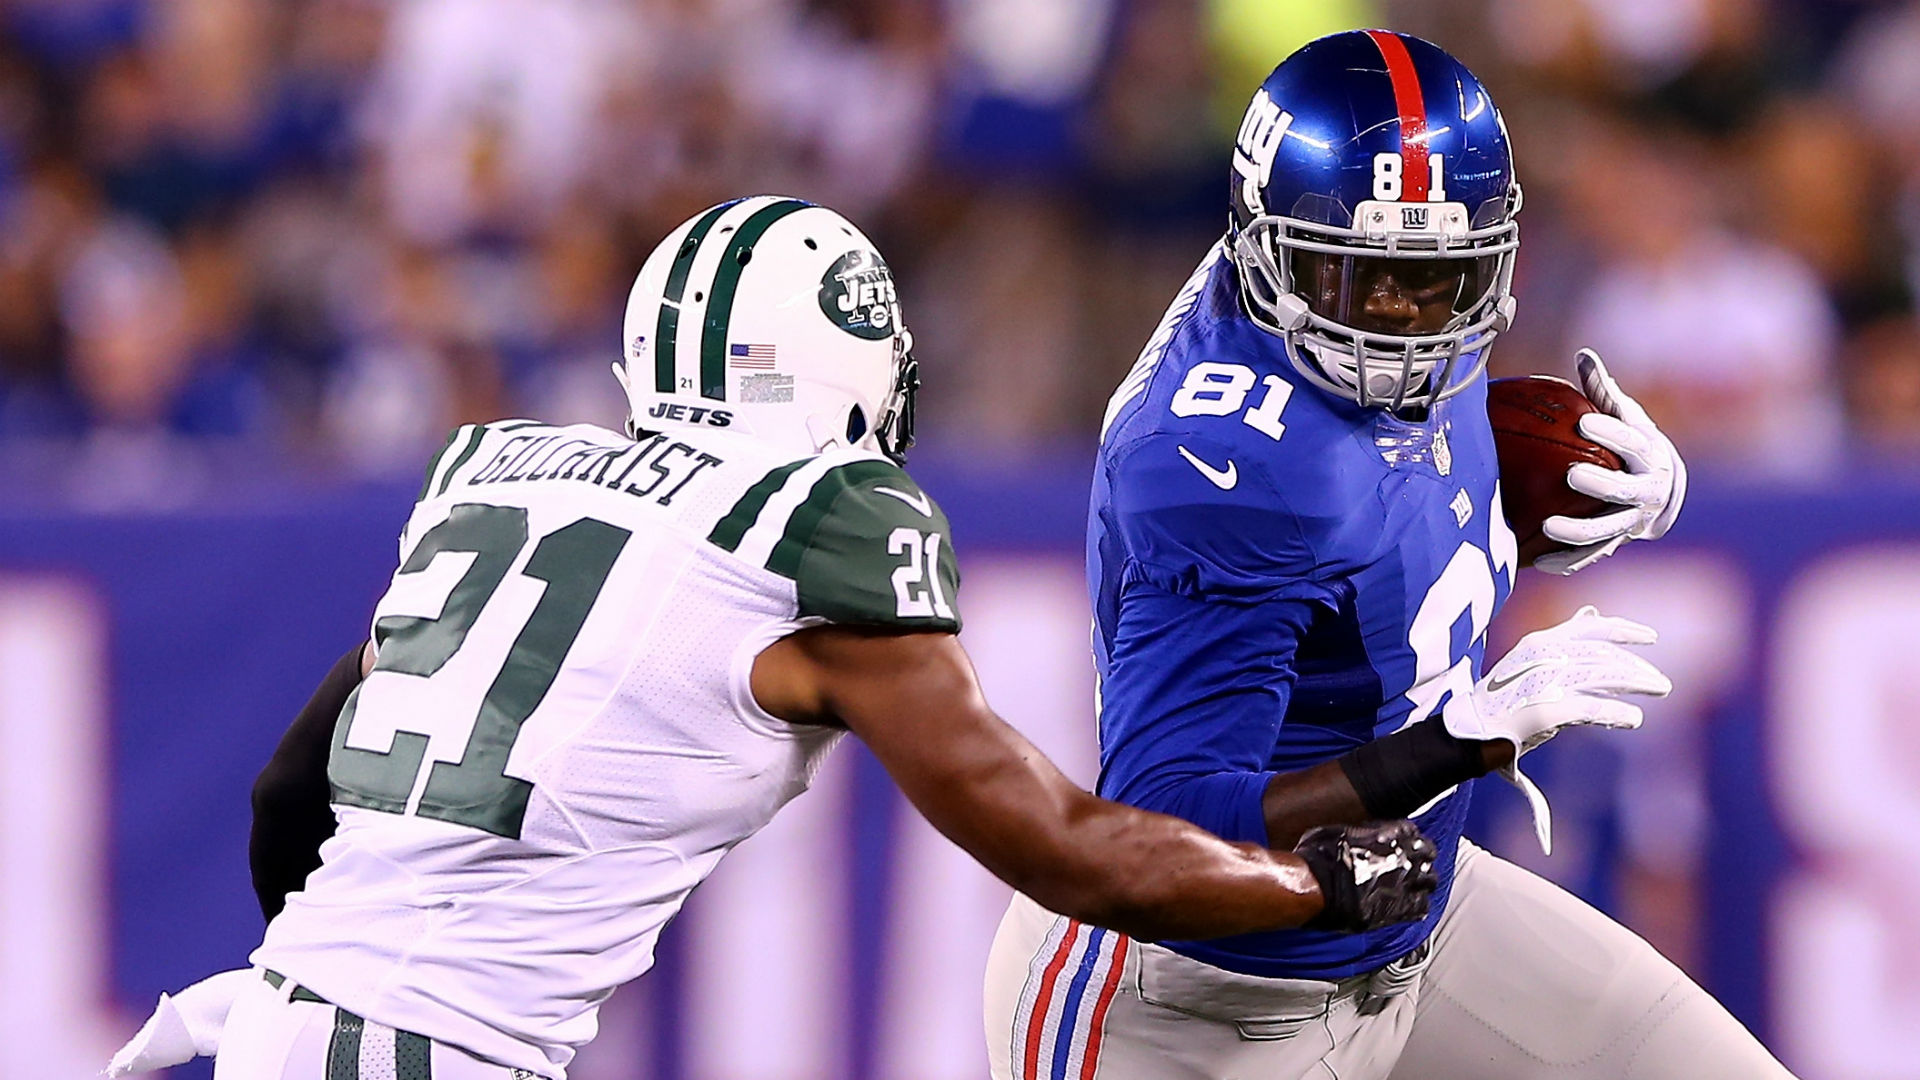 Former Giants, Jets TE Adrien Robinson arrested on serious drug charge